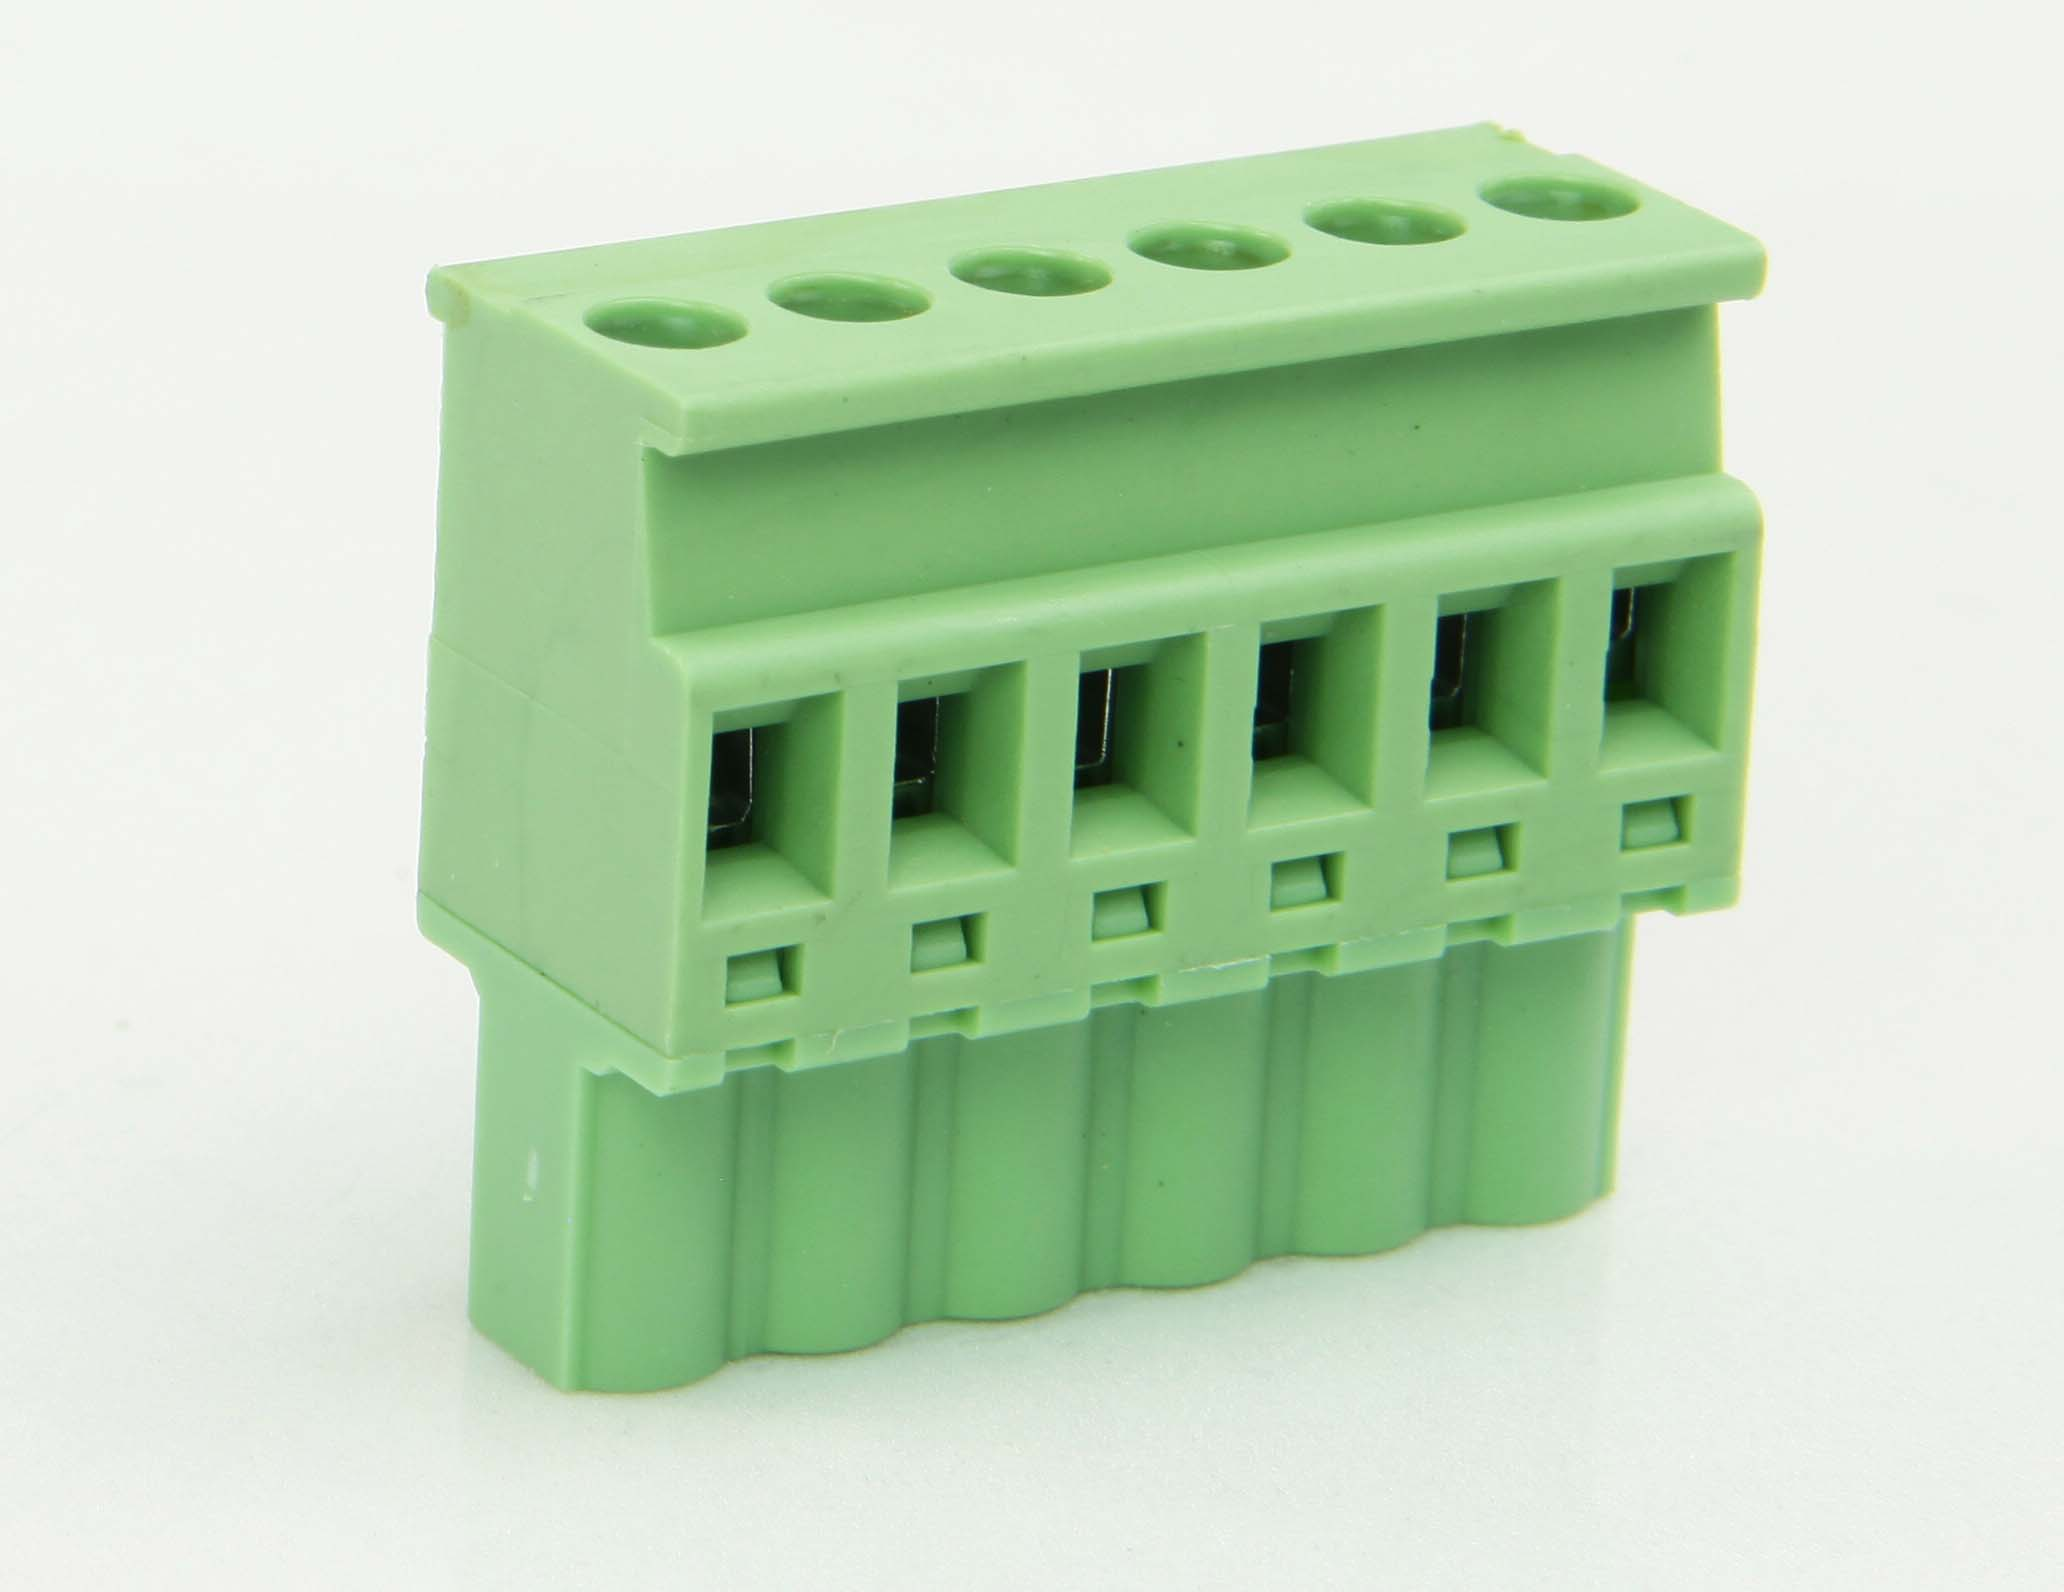 2ELPKB-5.08 PCB Wire Connector Block